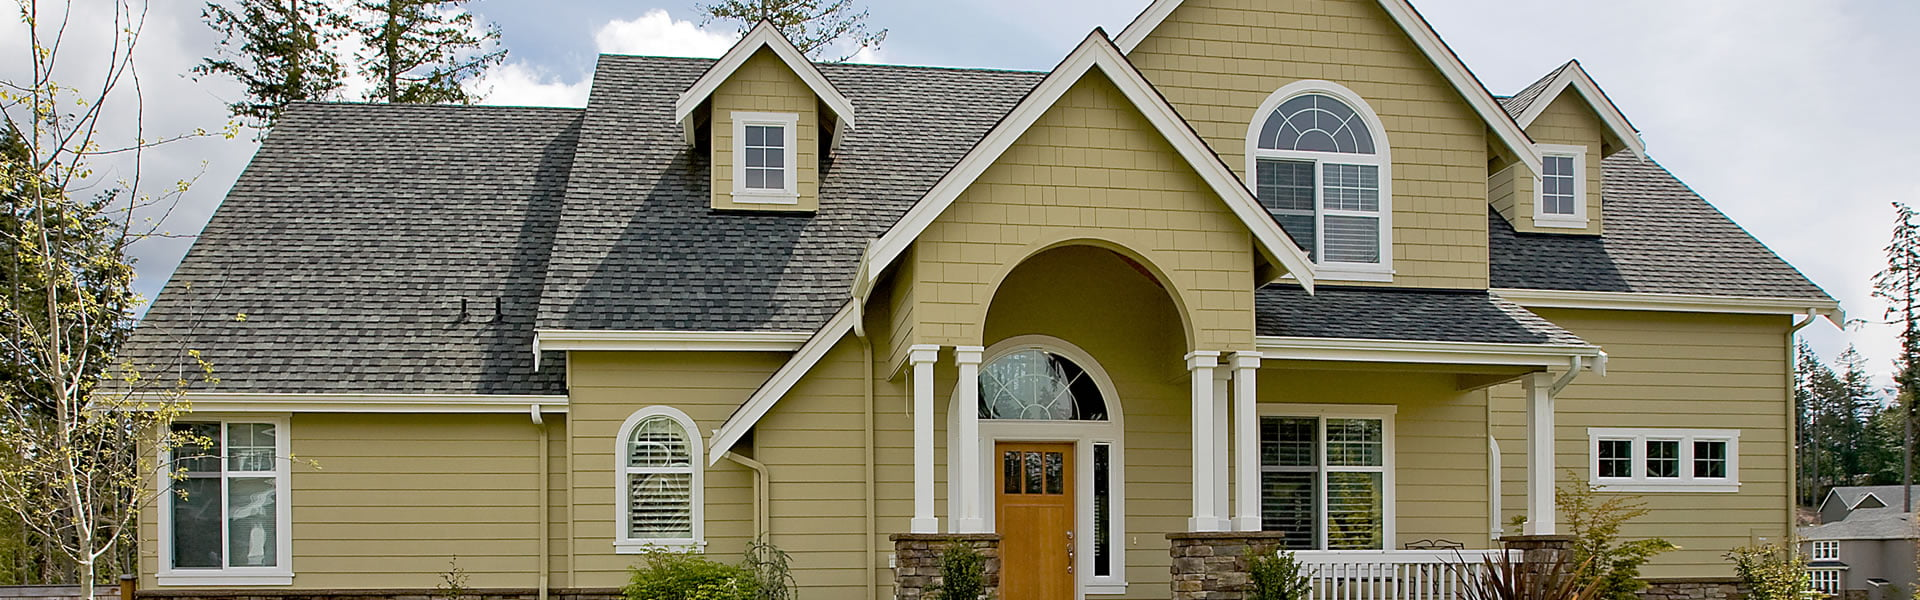 Roofing Replacement Windows Doors And Roofing By